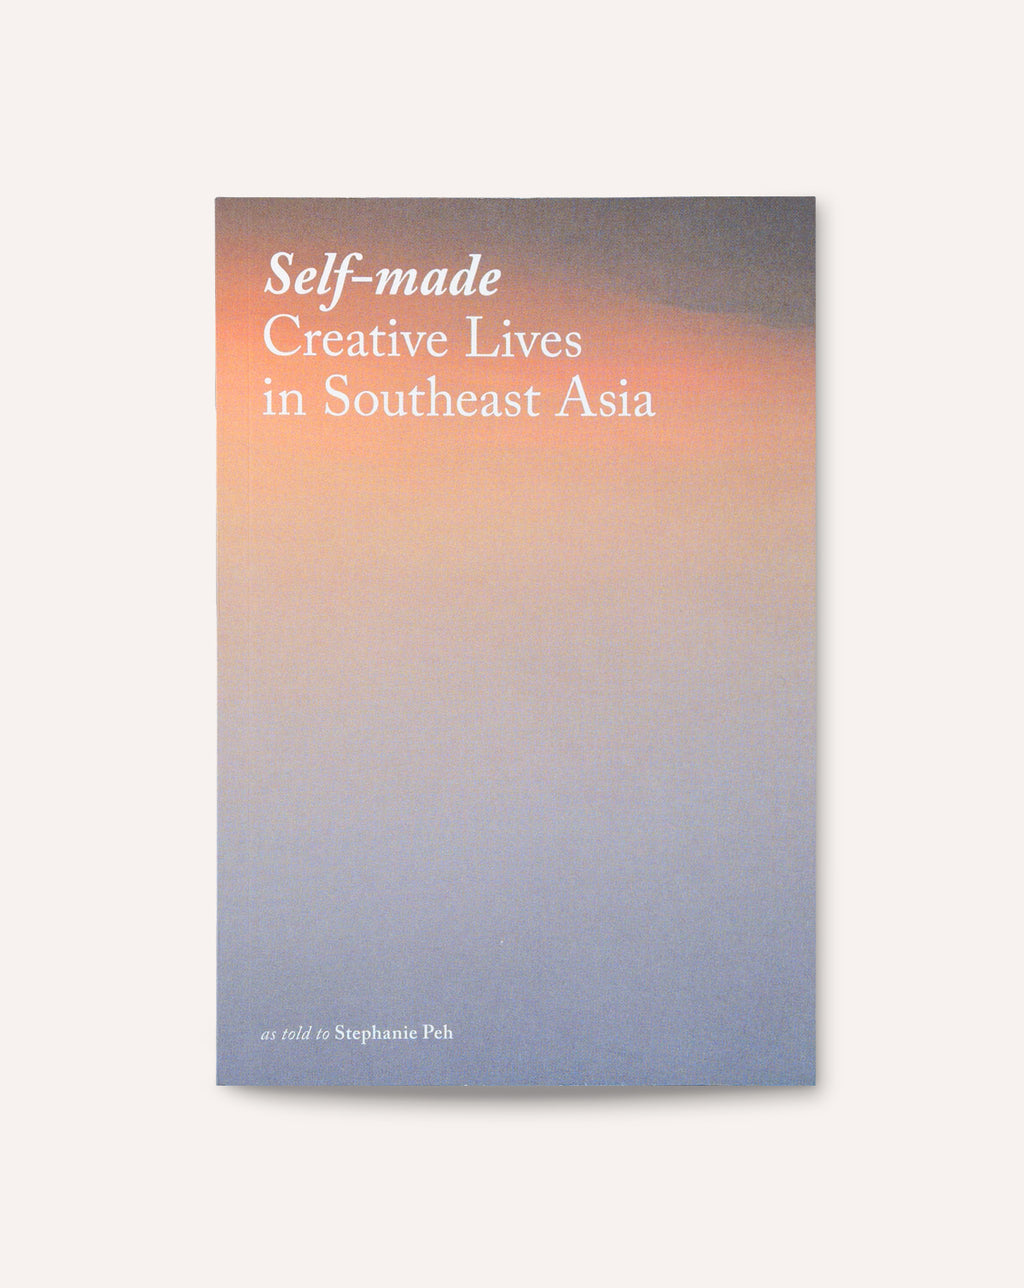 Self-made: Creative Lives in Southeast Asia